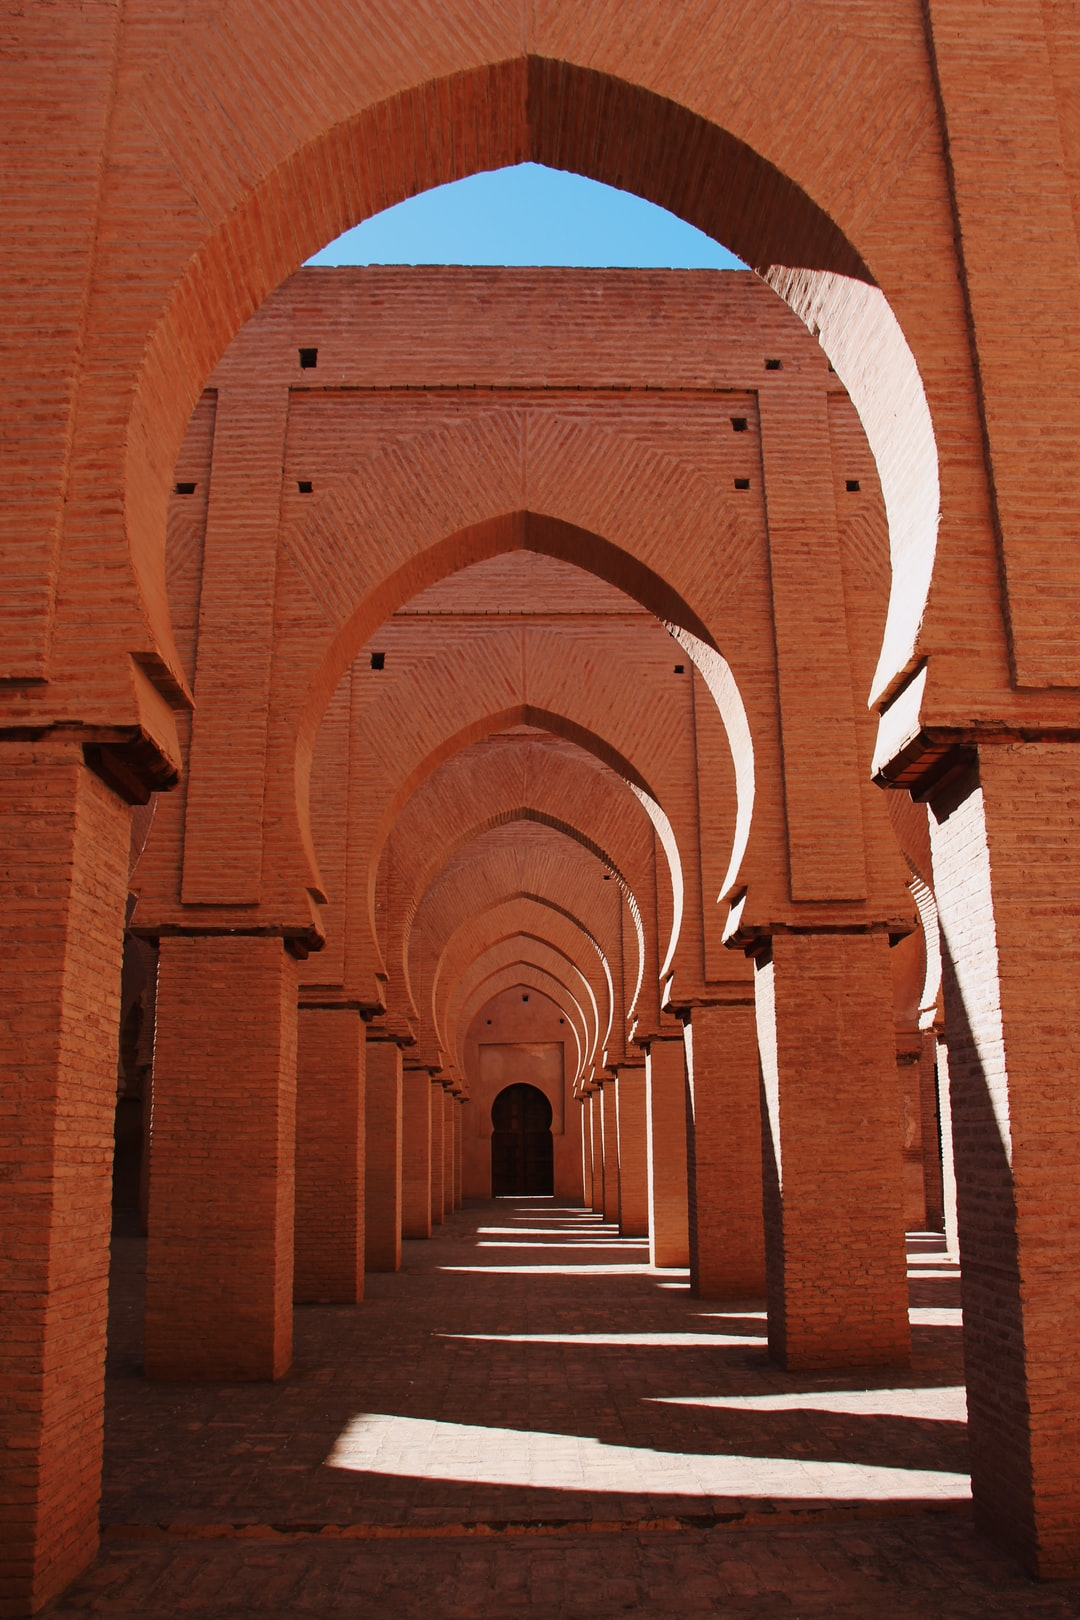 This amazing old mosque will blow you away with its beauty, location and perfect symmetric arches!